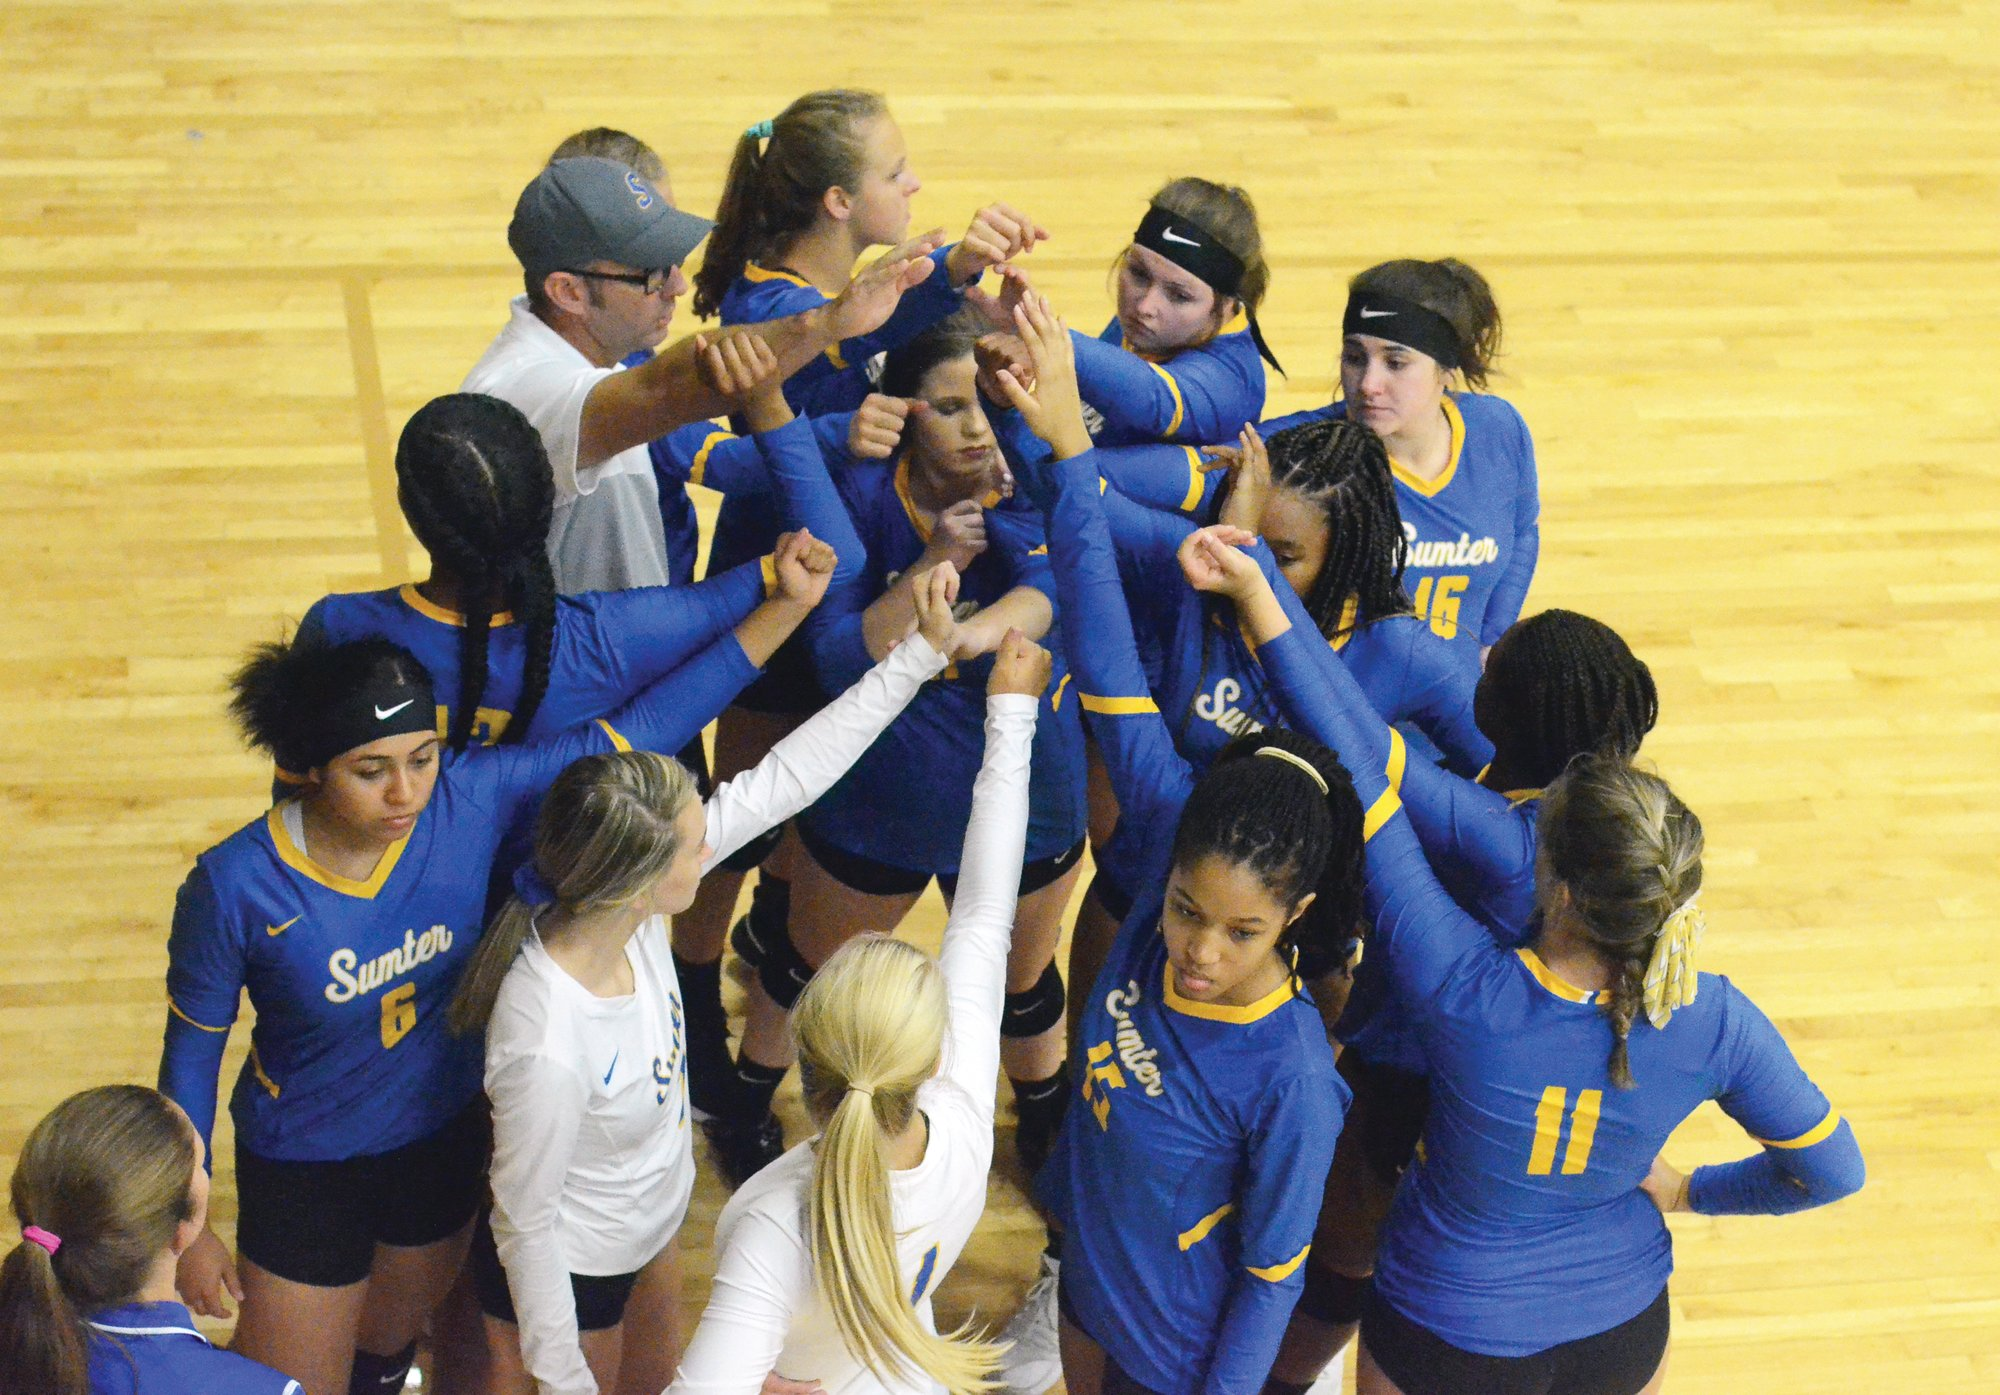 The Sumter High School volleyball team is one of many fall sports teams in Sumter School District still waiting to hear for a start date for summer workouts after the South Carolina High School League allowed schools to return from the coronavirus pandemic at the beginning of last month.